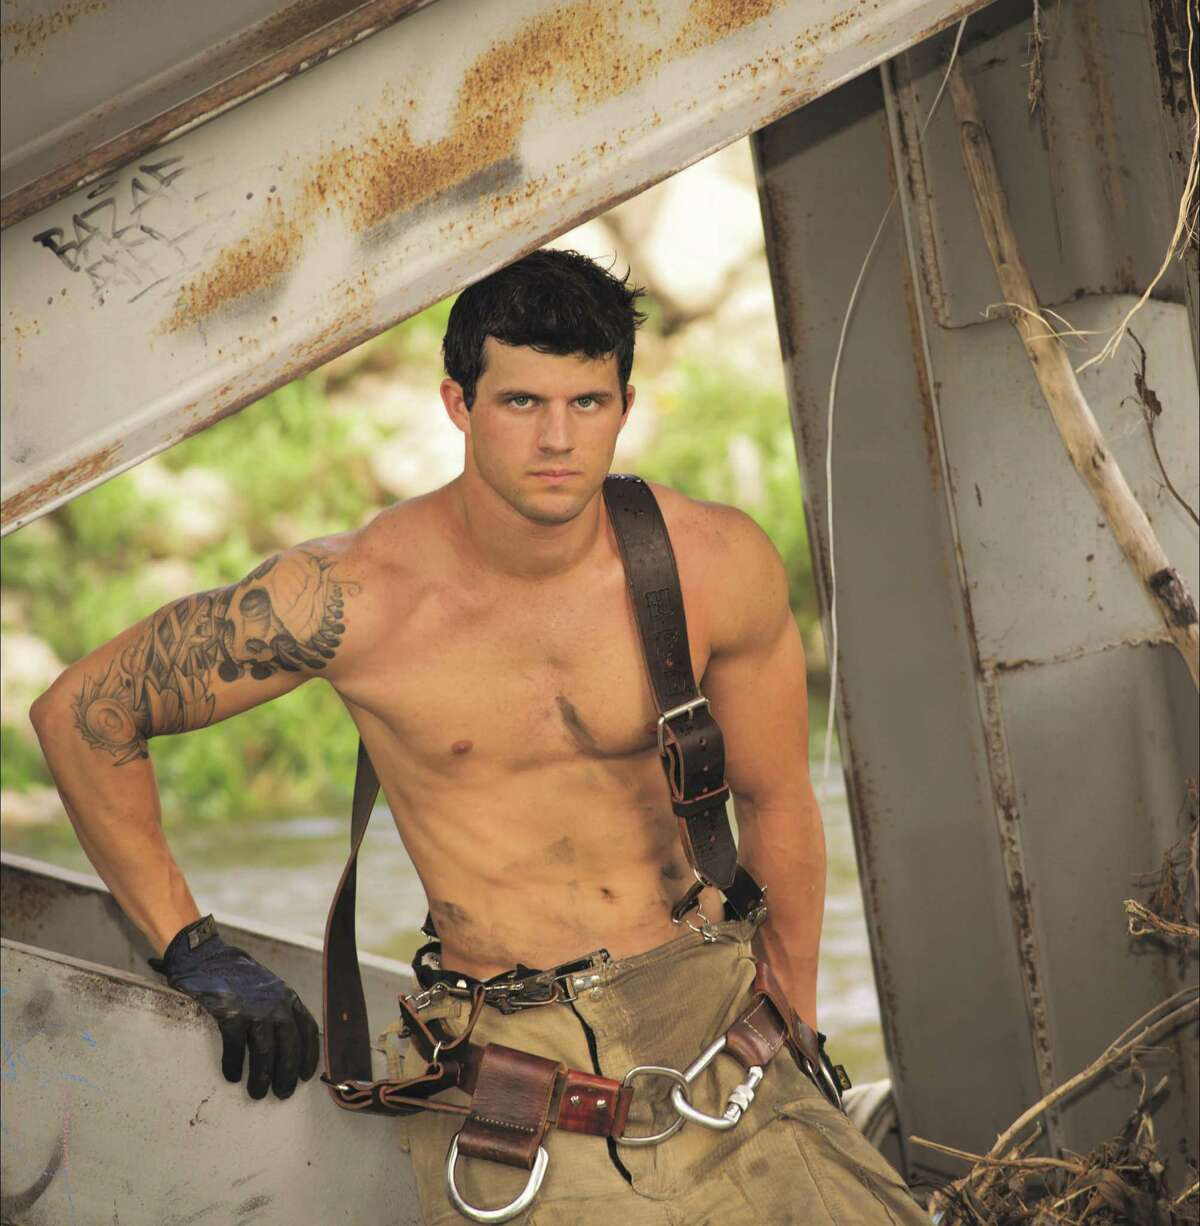 Aaron Gilbert of Porter is Mr. January in the 2016 Houston Fire Fighters Burned Children's Fund calendar. Gilbert attended New Caney High School.